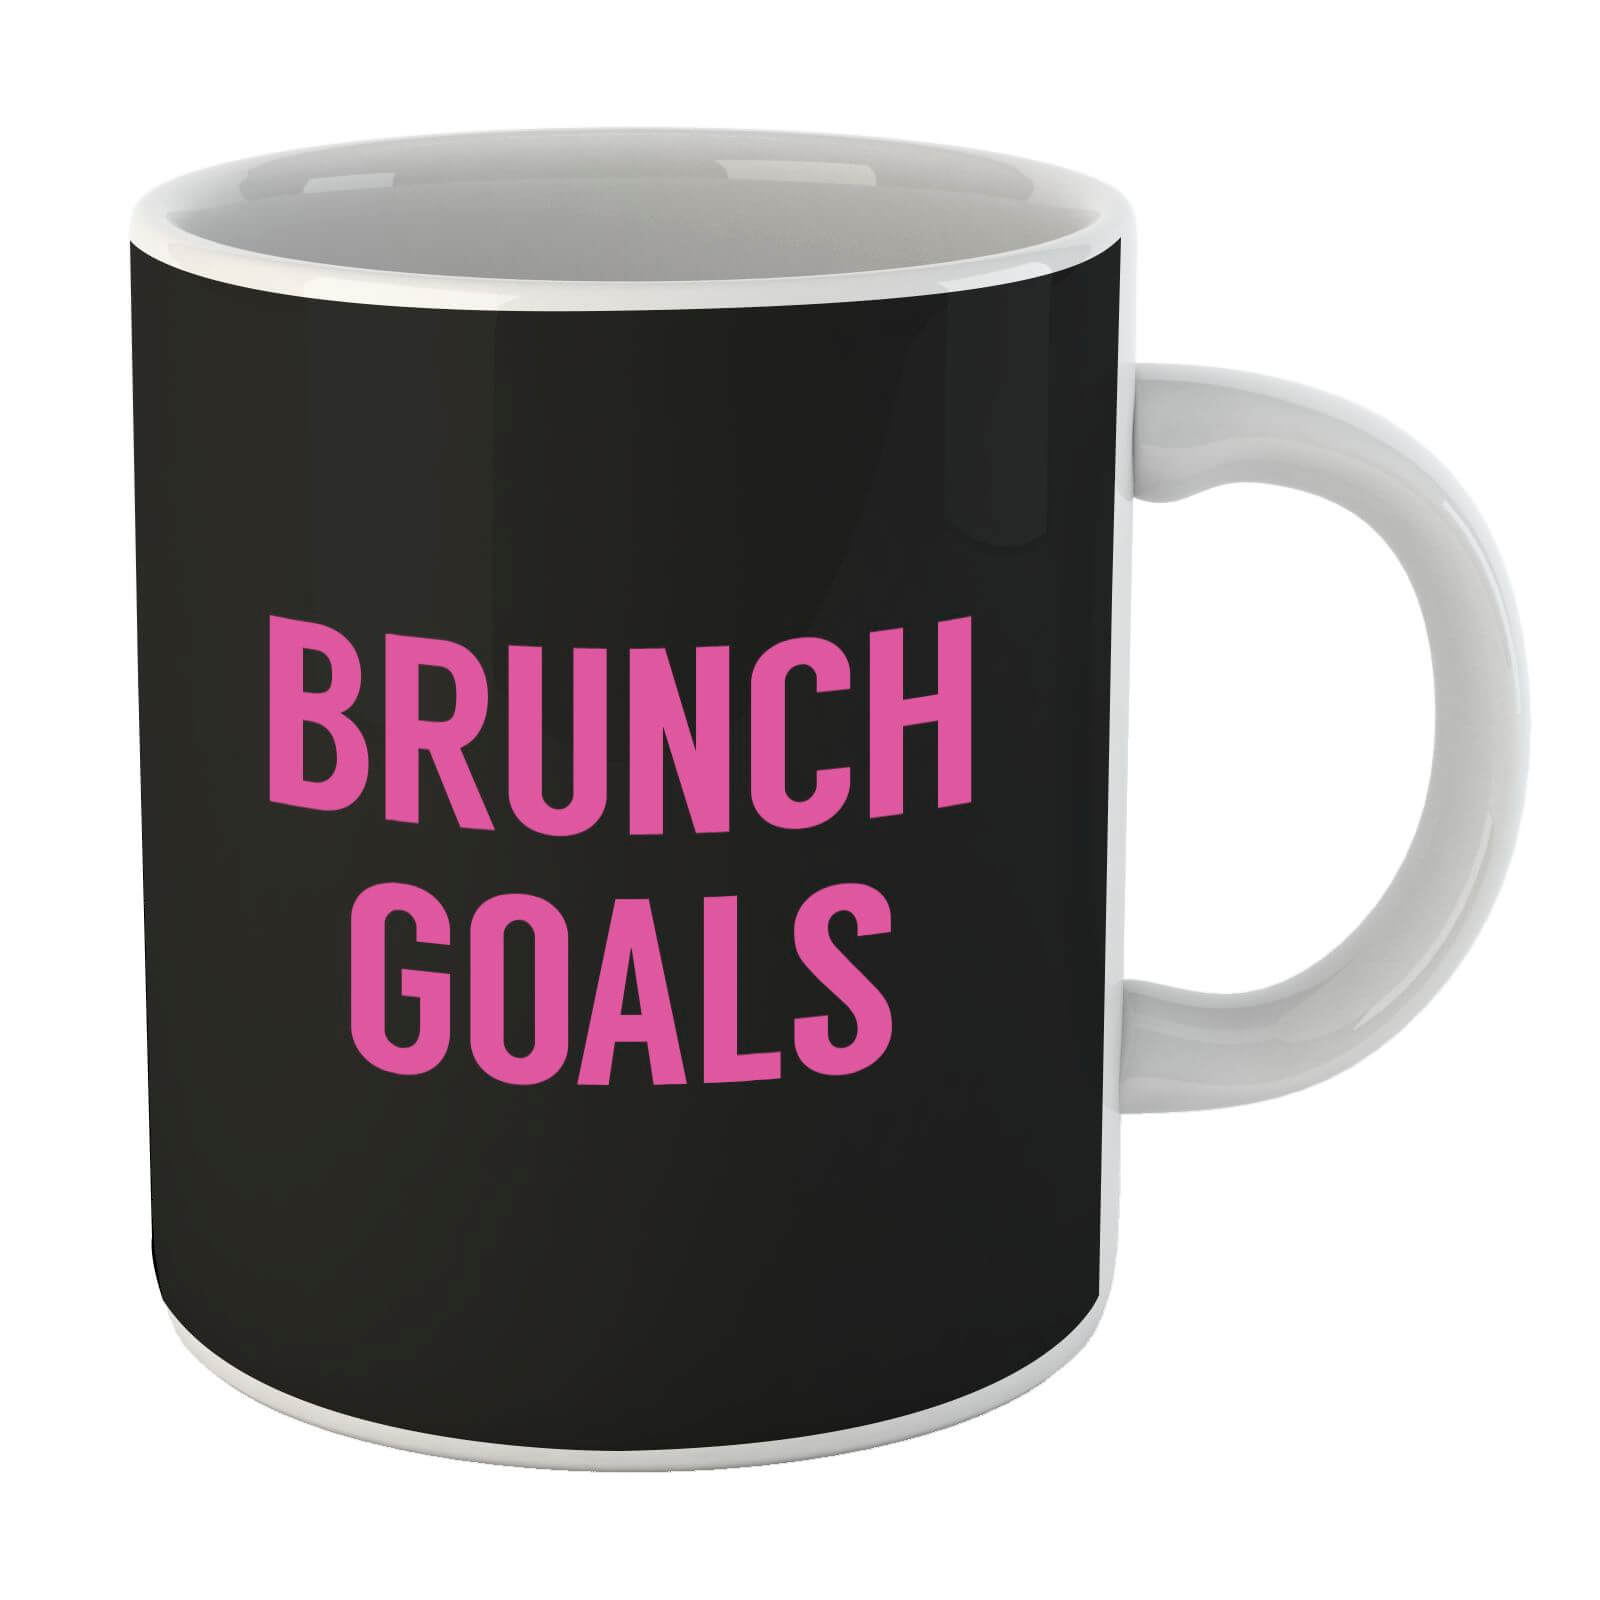 Brunch Goals Mug